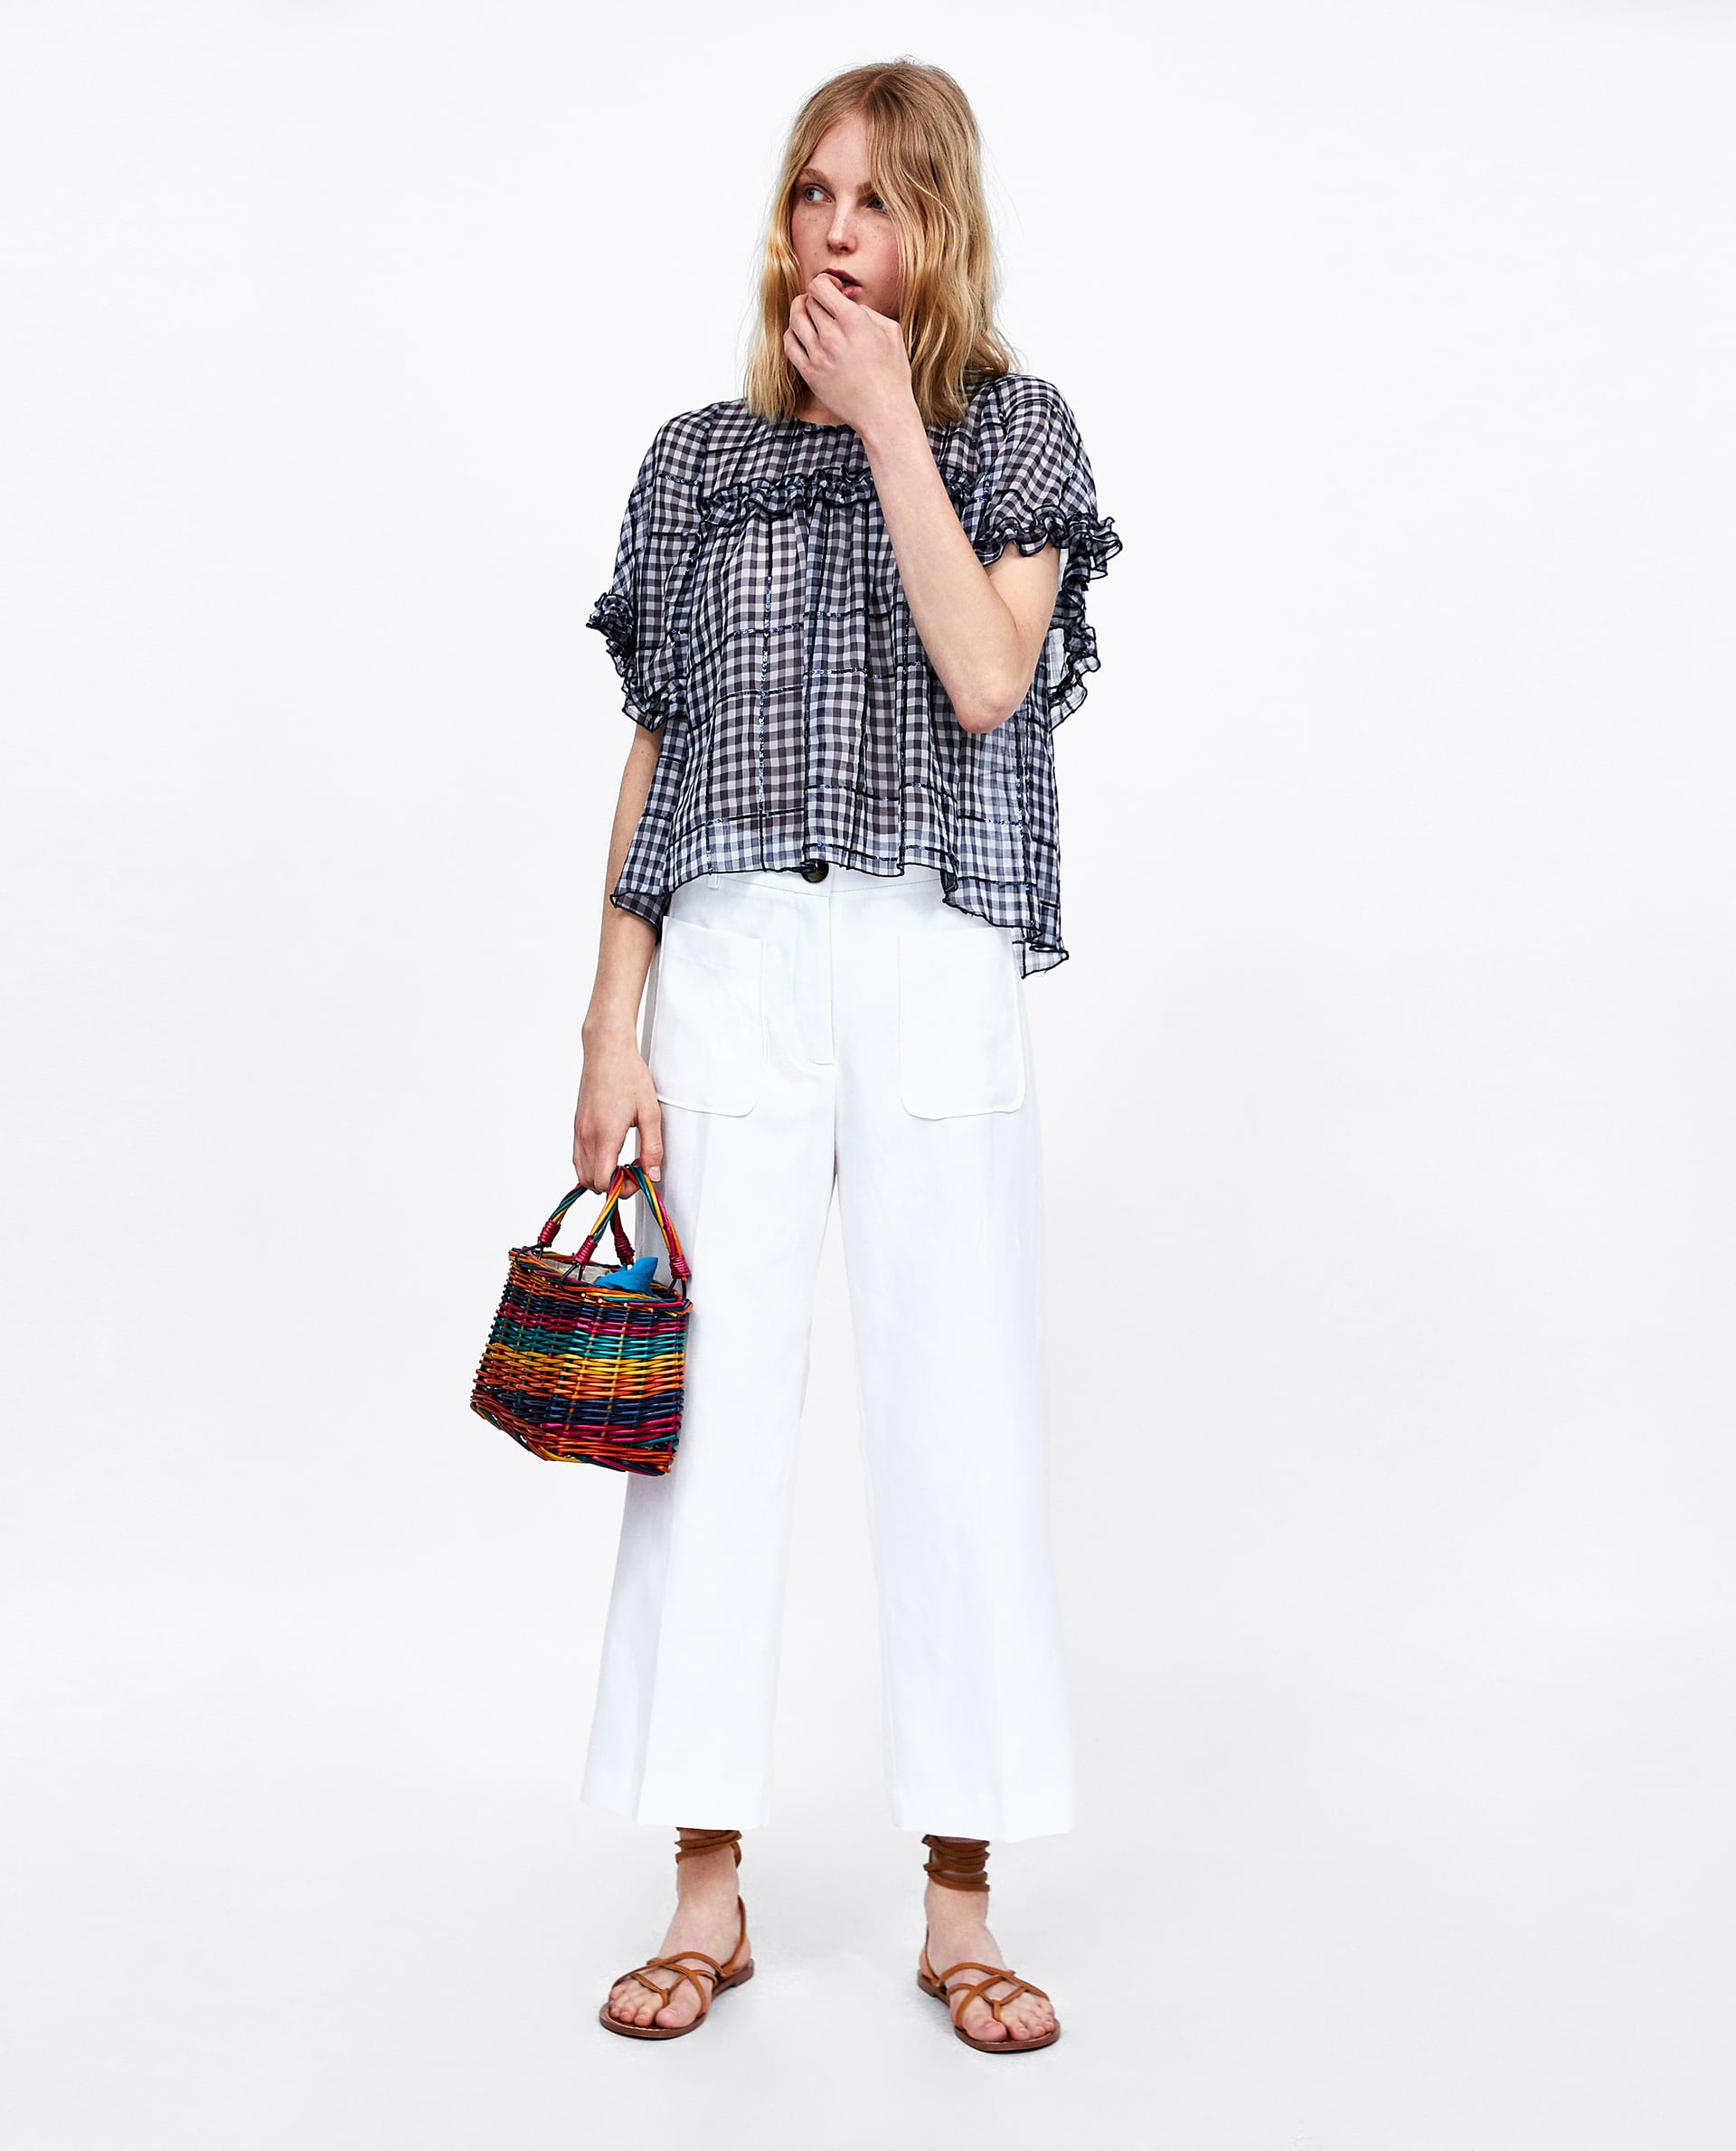 883131d4d96c6 Zara SEQUINNED GINGHAM TOP at £12.99